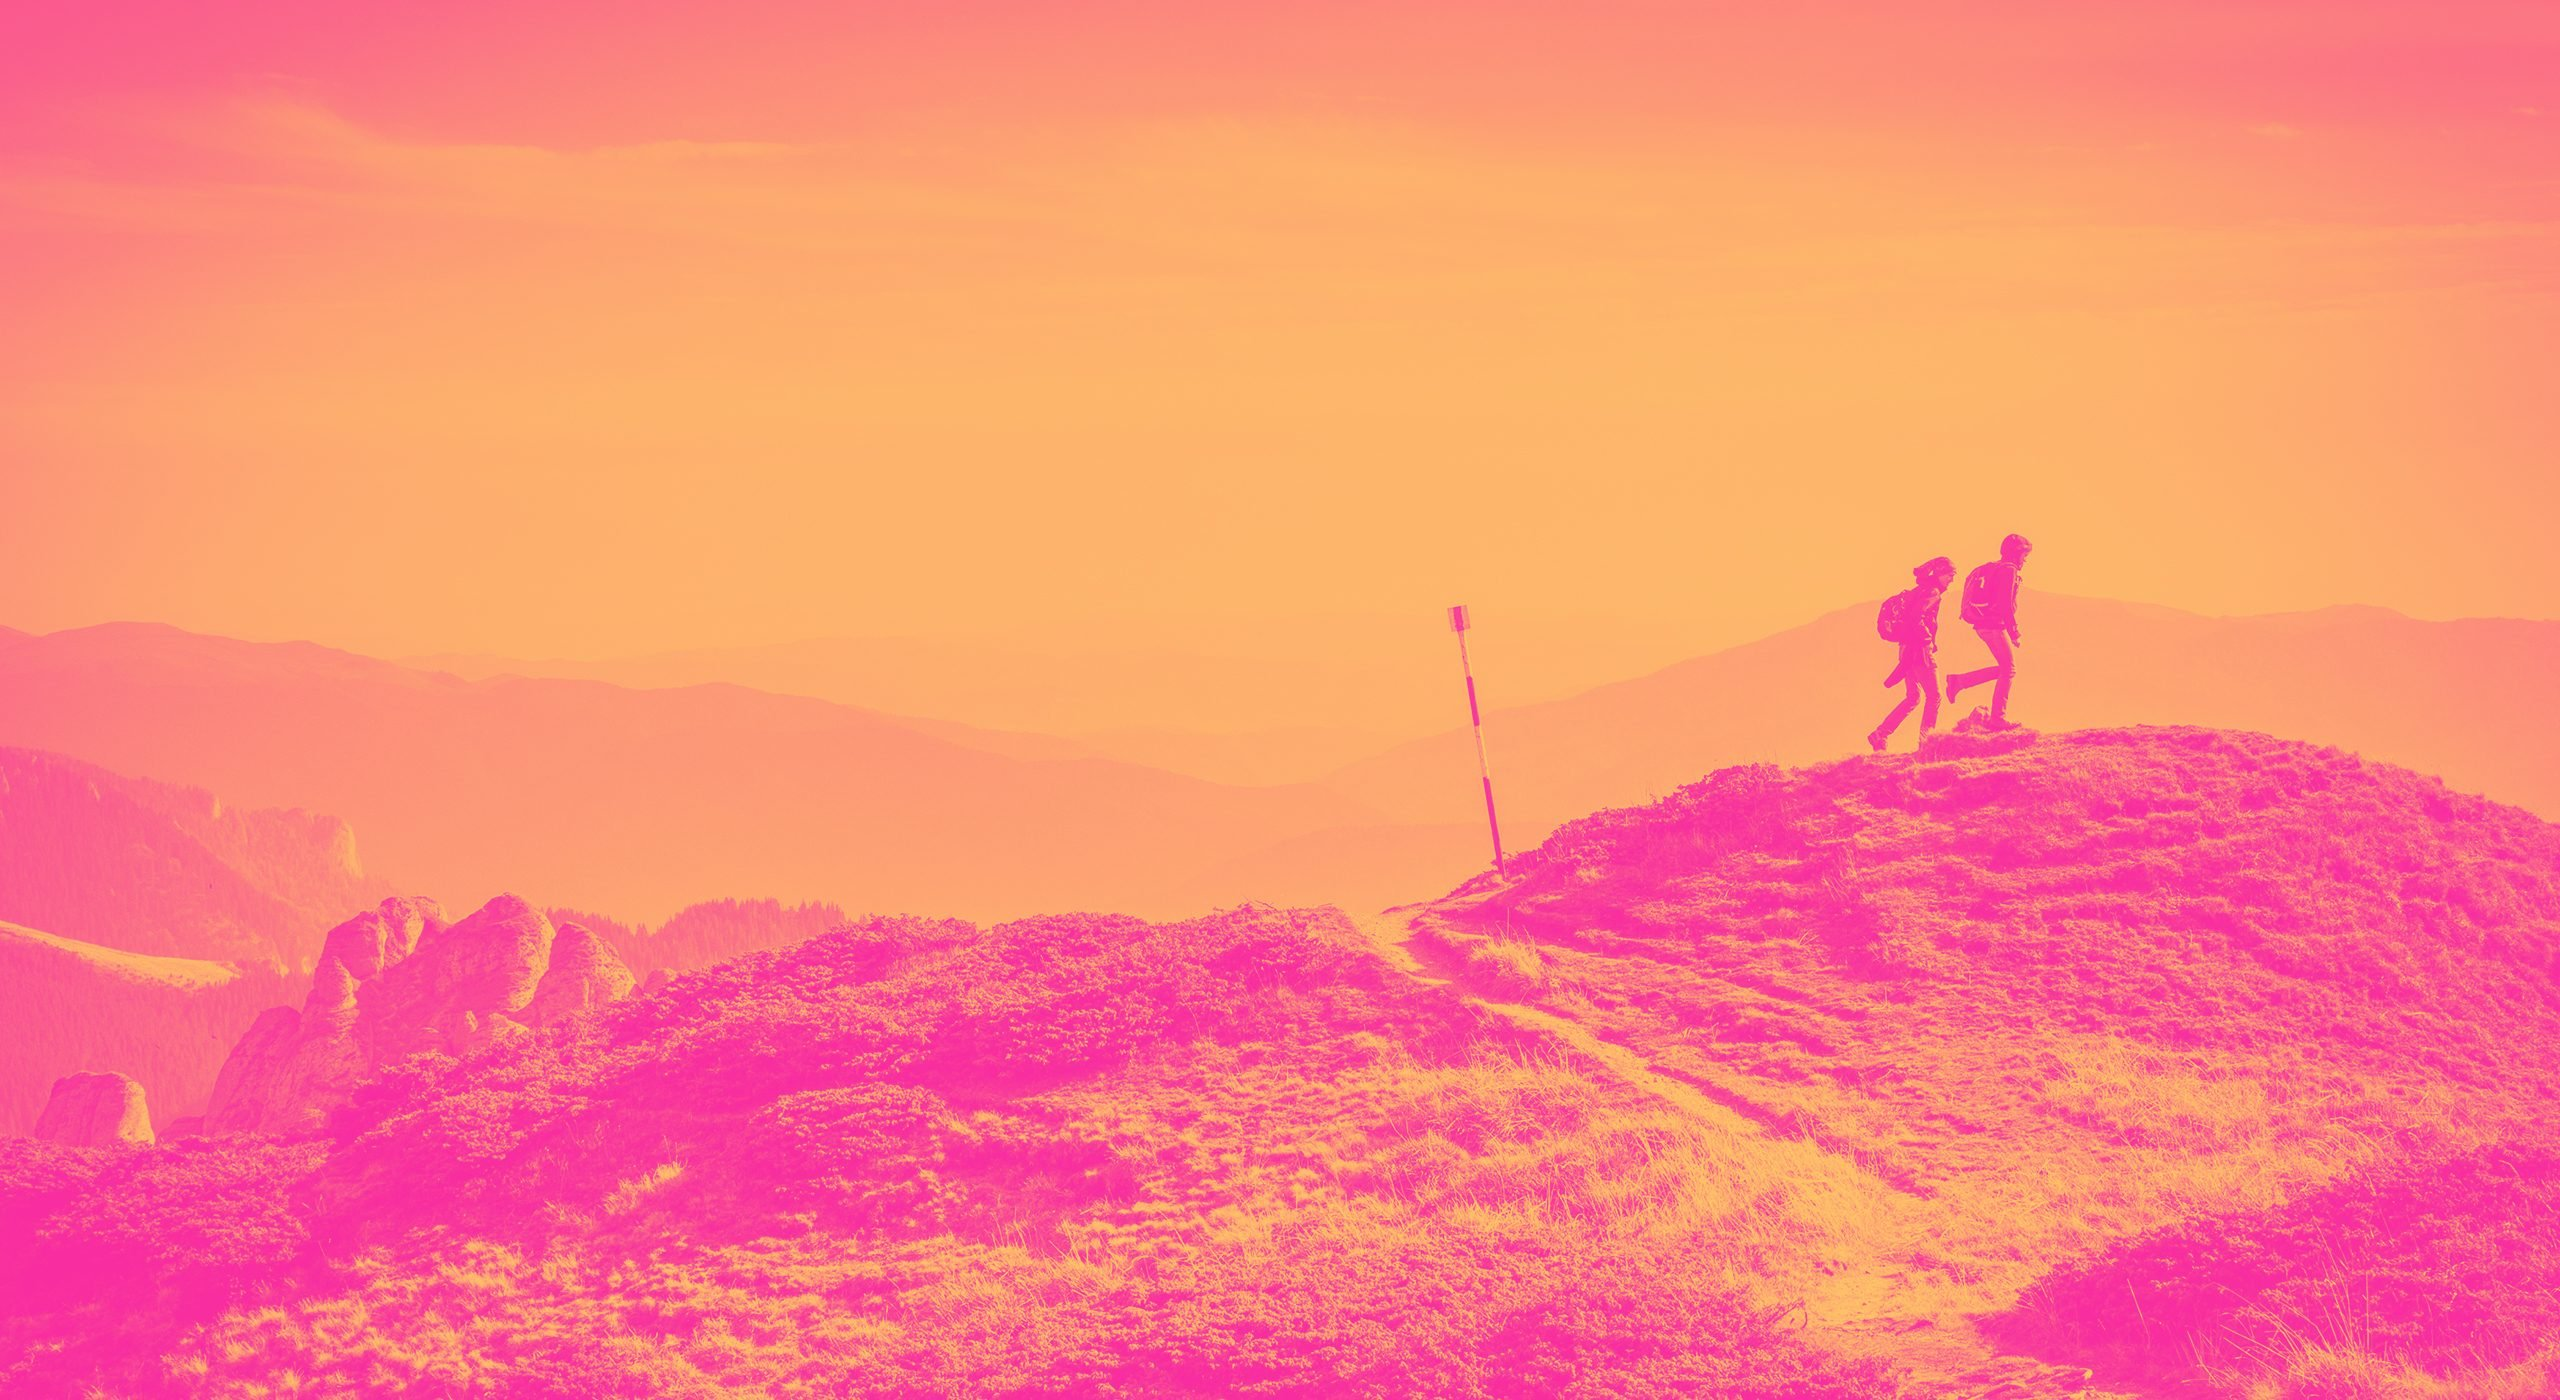 Two hikers on a hill